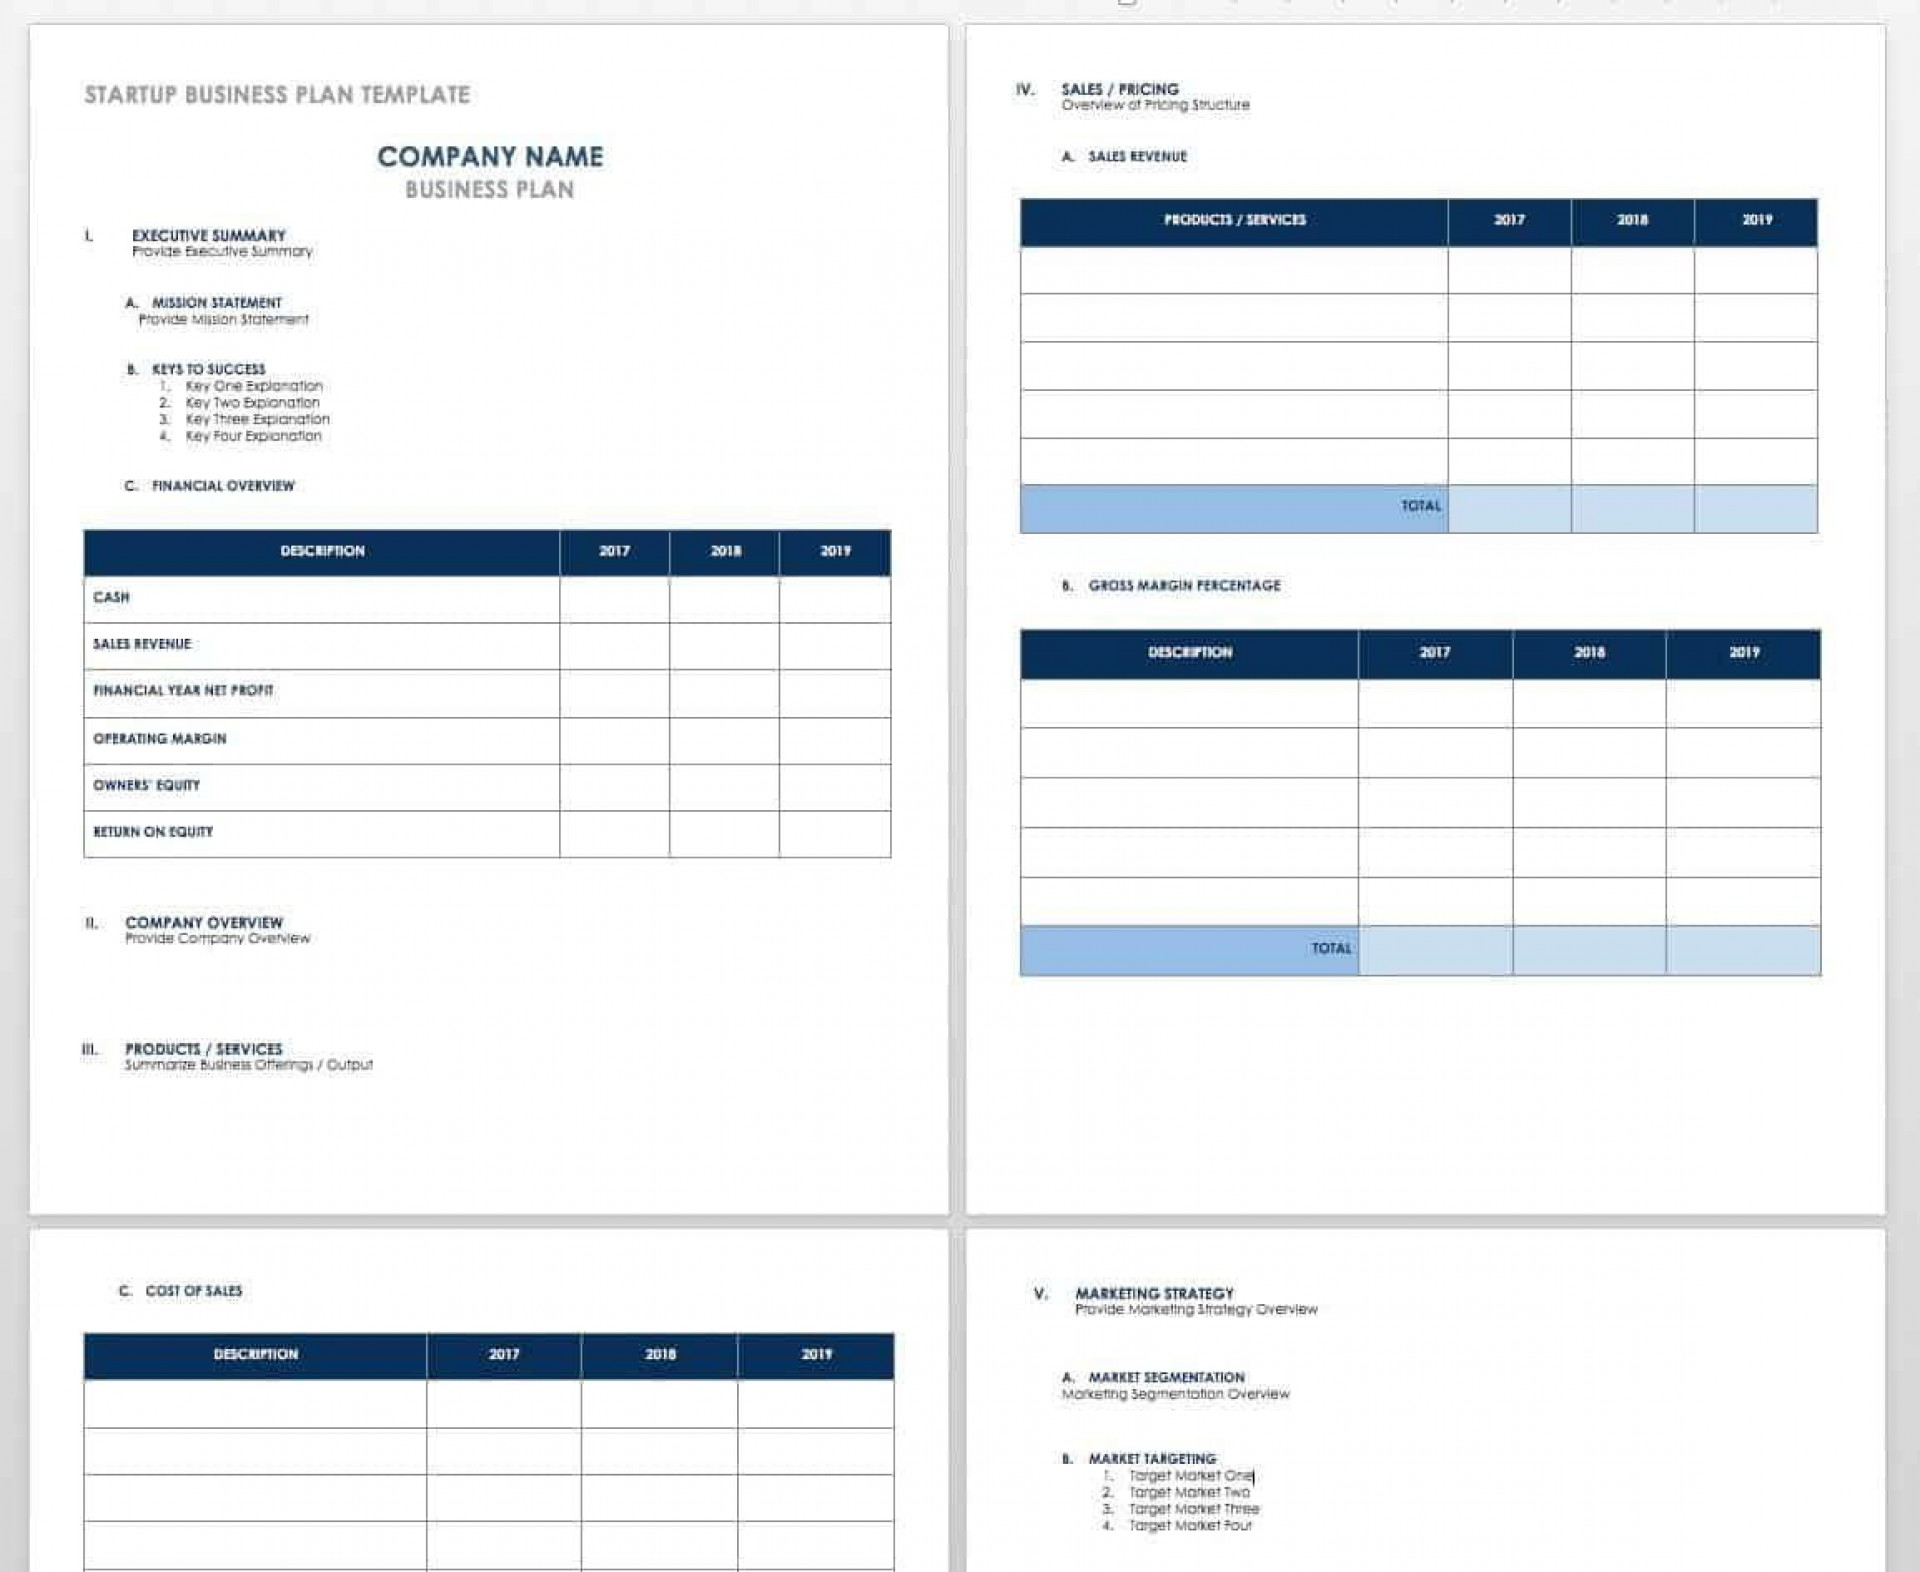 006 Best Excel Busines Plan Template Free Concept  Startup Continuity1920